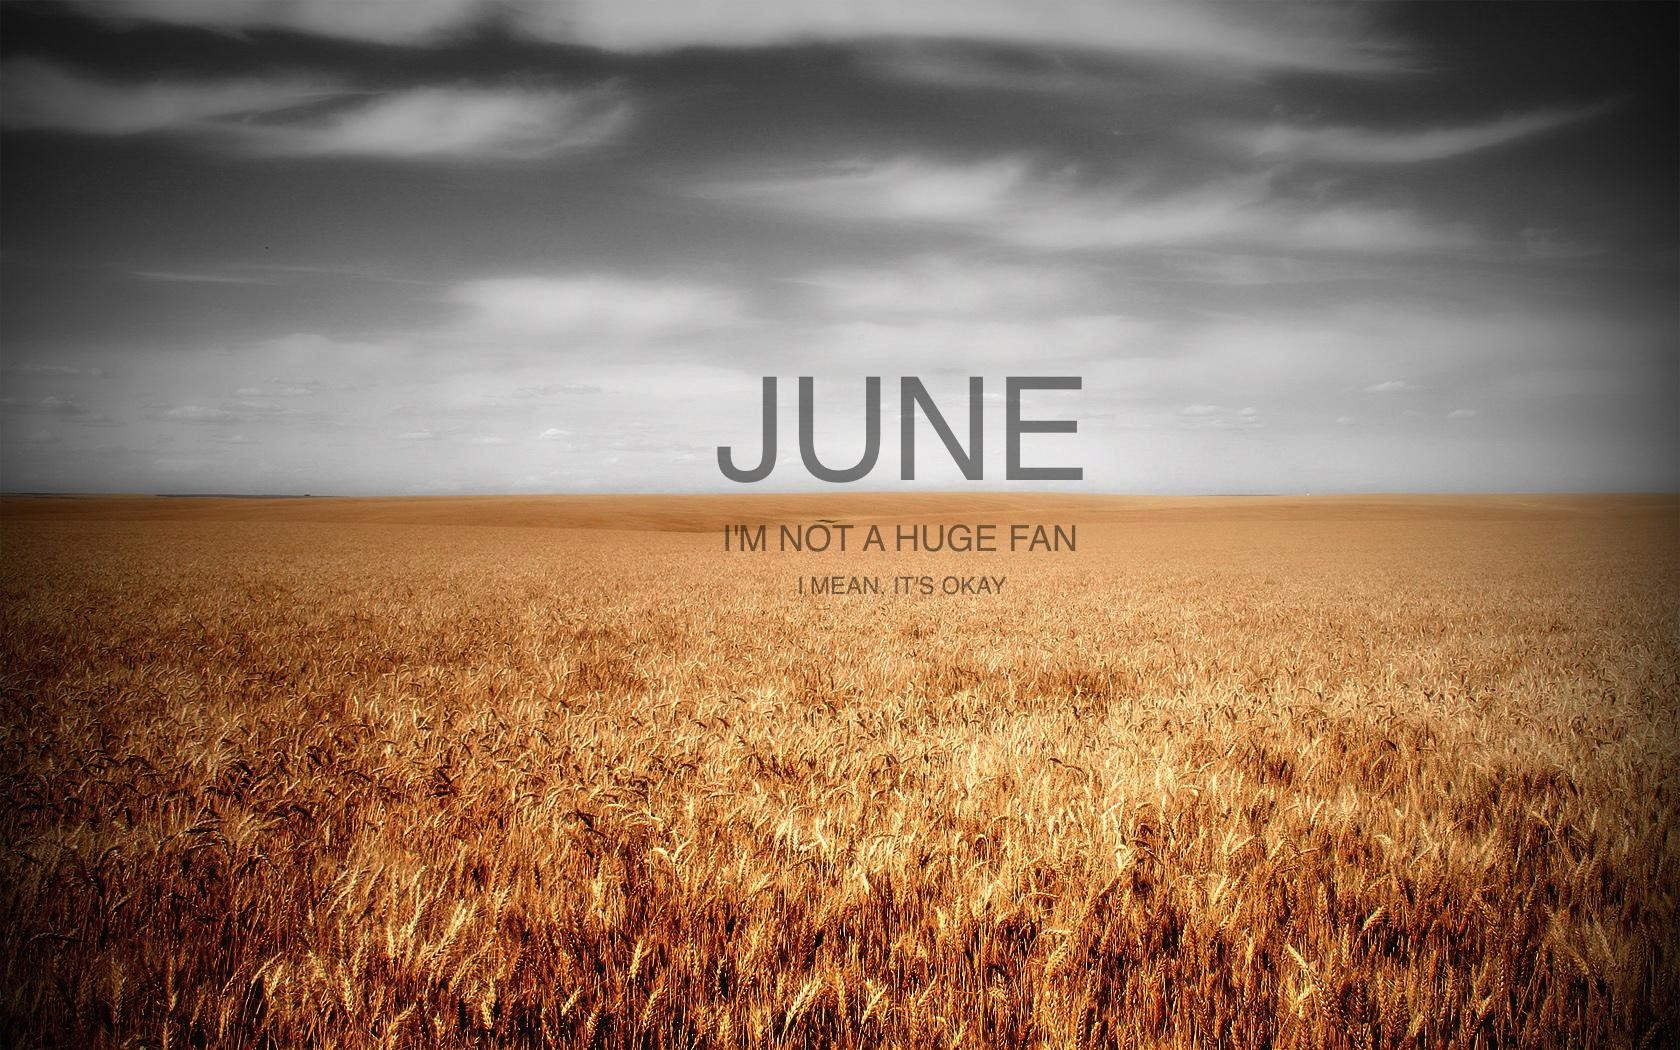 Bff Quotes Wallpapers June Field Humor Clouds Wallpapers Hd Desktop And